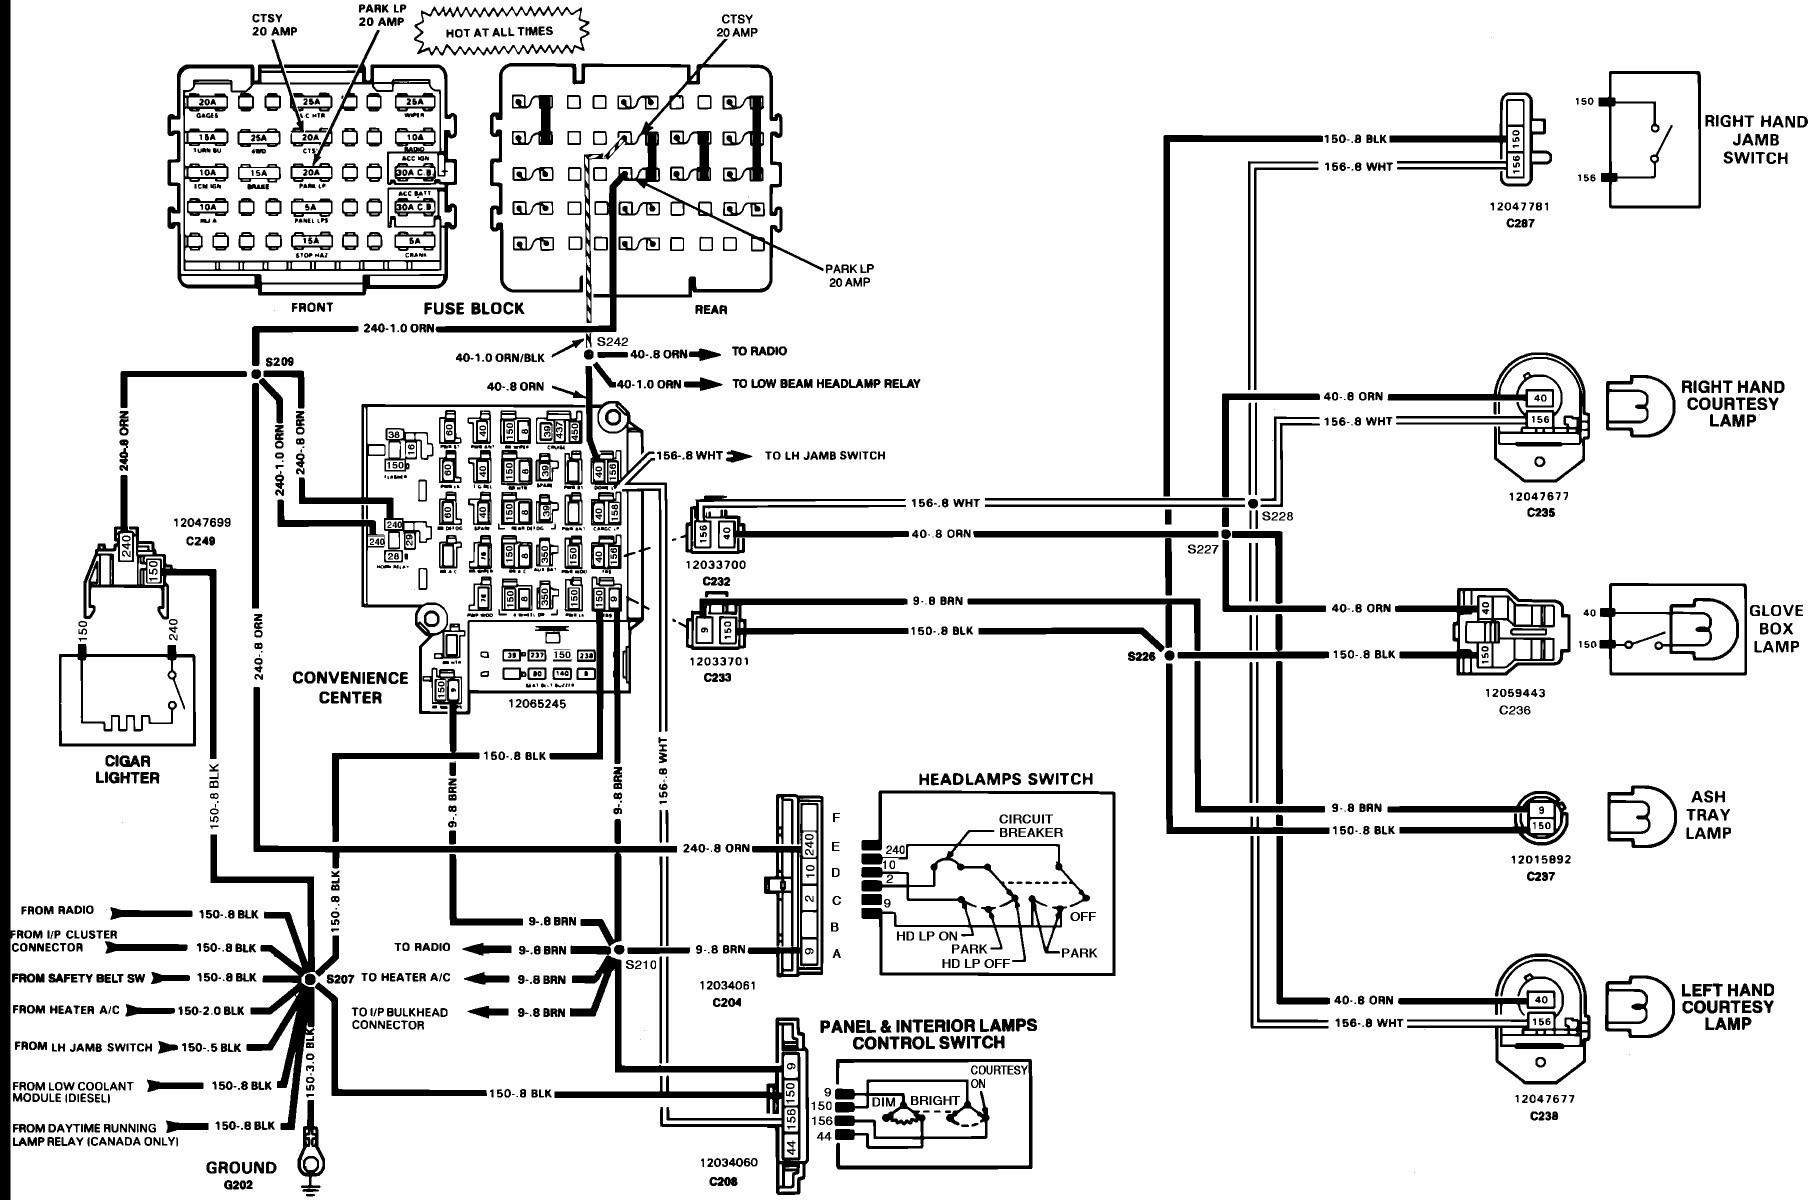 Honda 3013 Wiring Diagram Wiring Diagram Yer